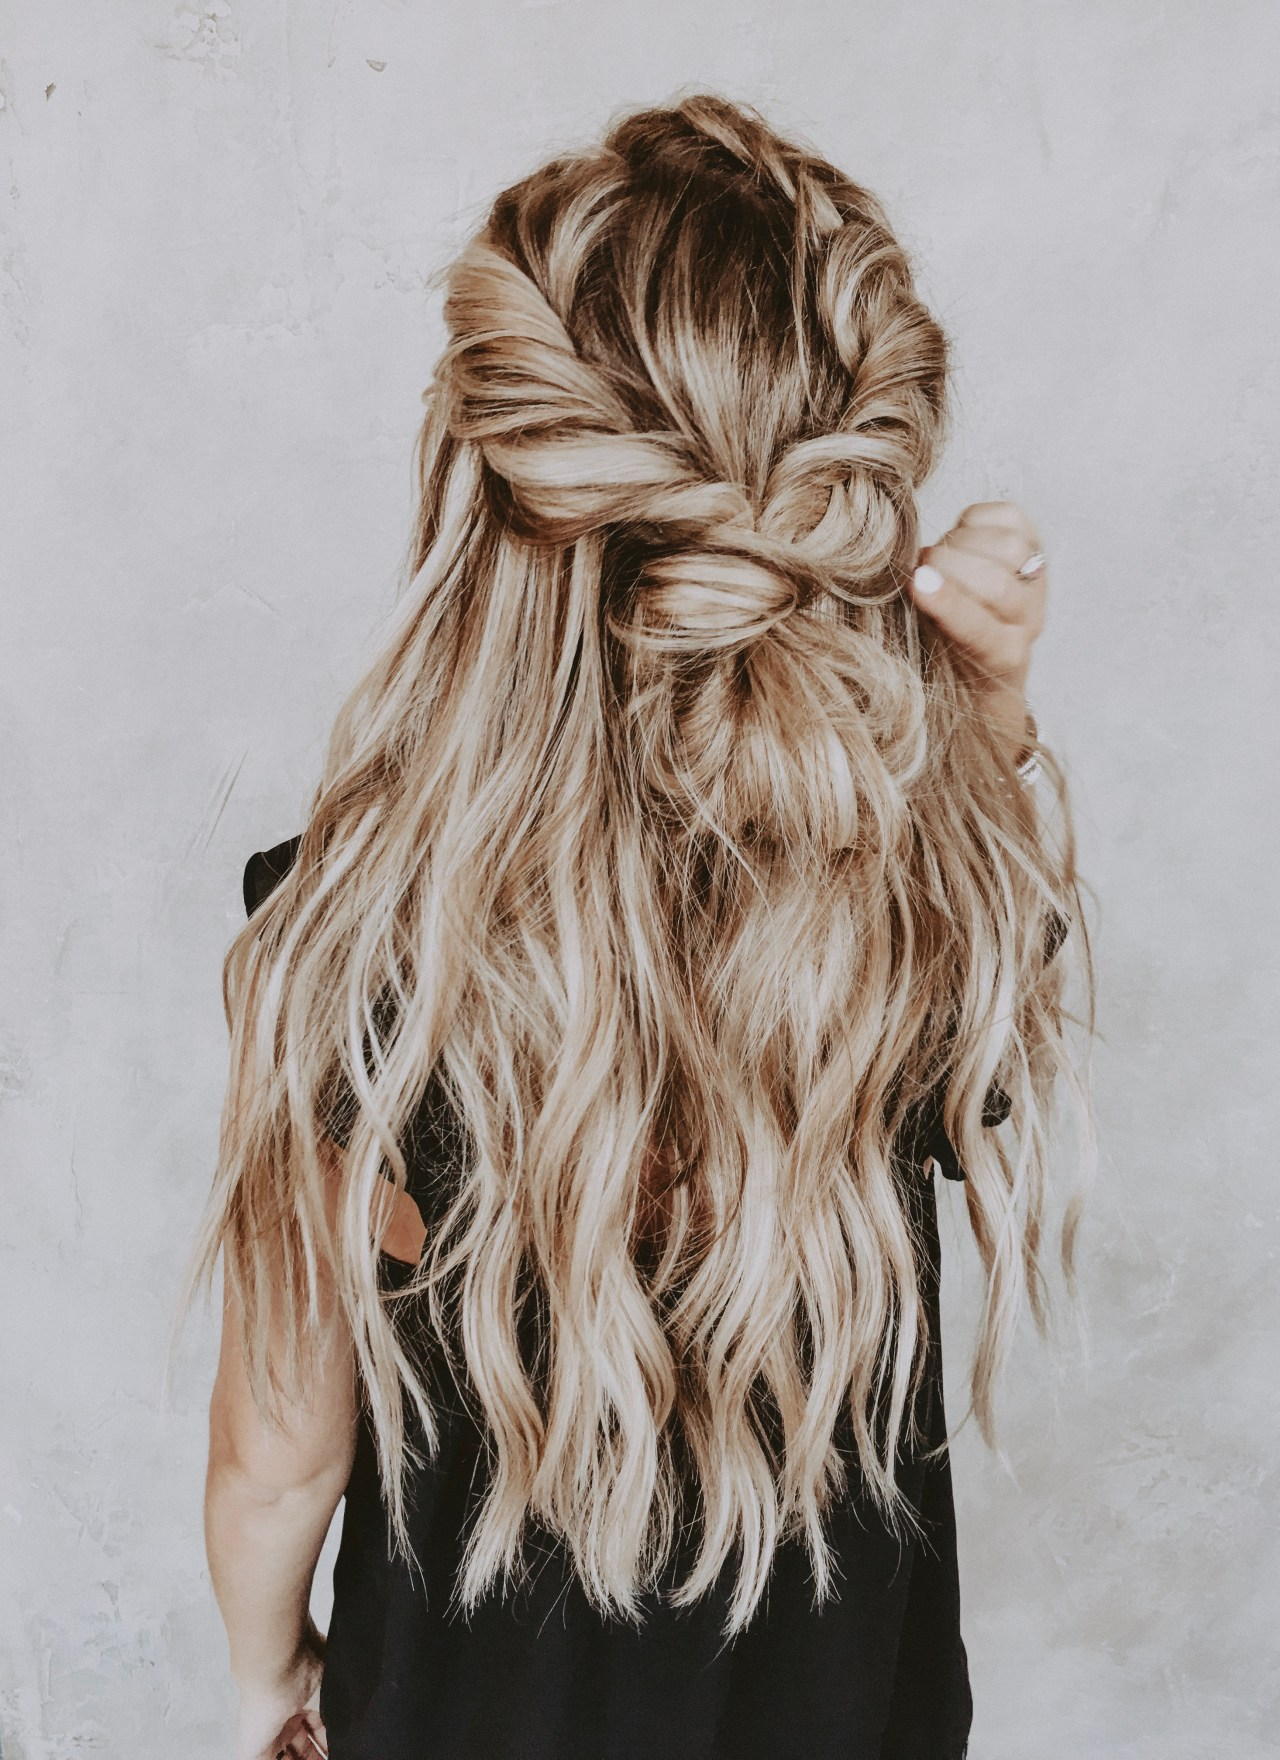 EVERYTHING TO KNOW ABOUT HABIT HAND-TIED HAIR EXTENSIONS